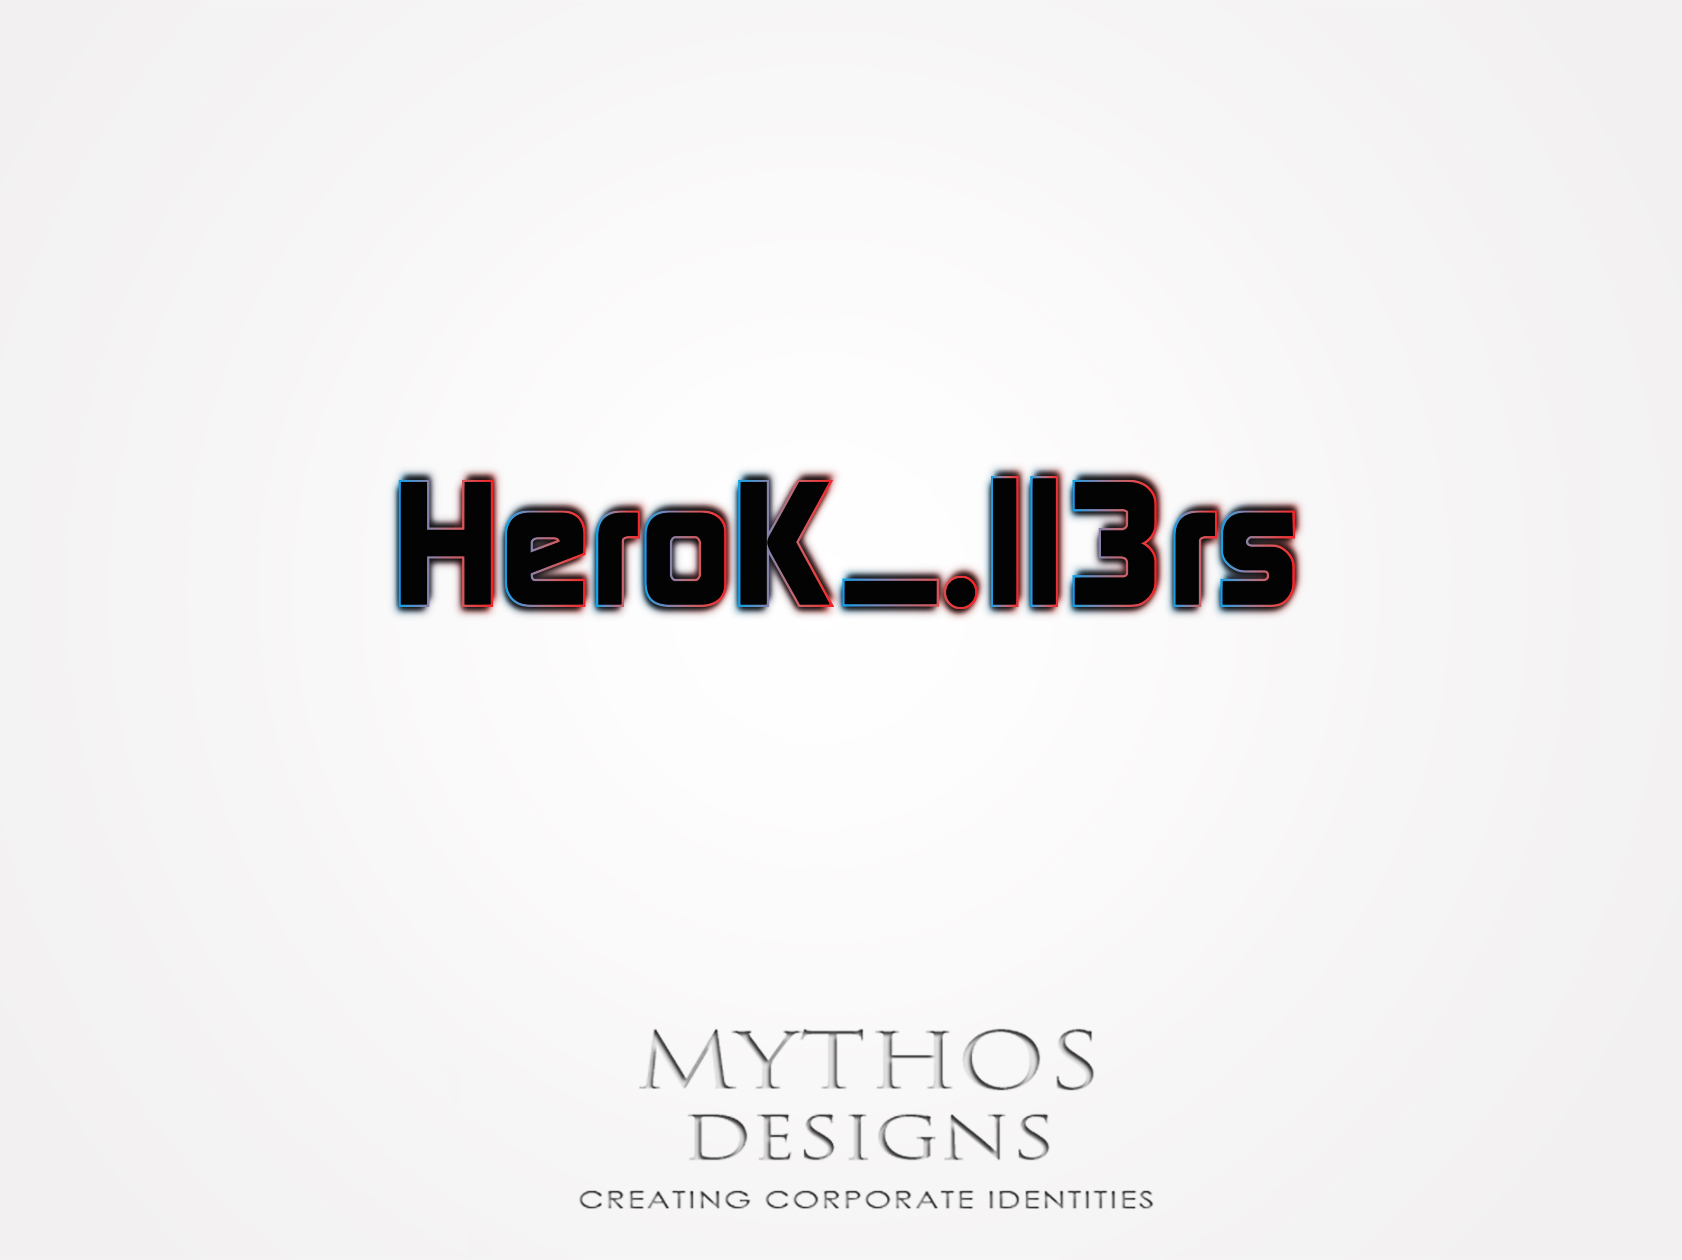 Logo Design by Mythos Designs - Entry No. 6 in the Logo Design Contest Fun Logo Design for HeroKill3rs.